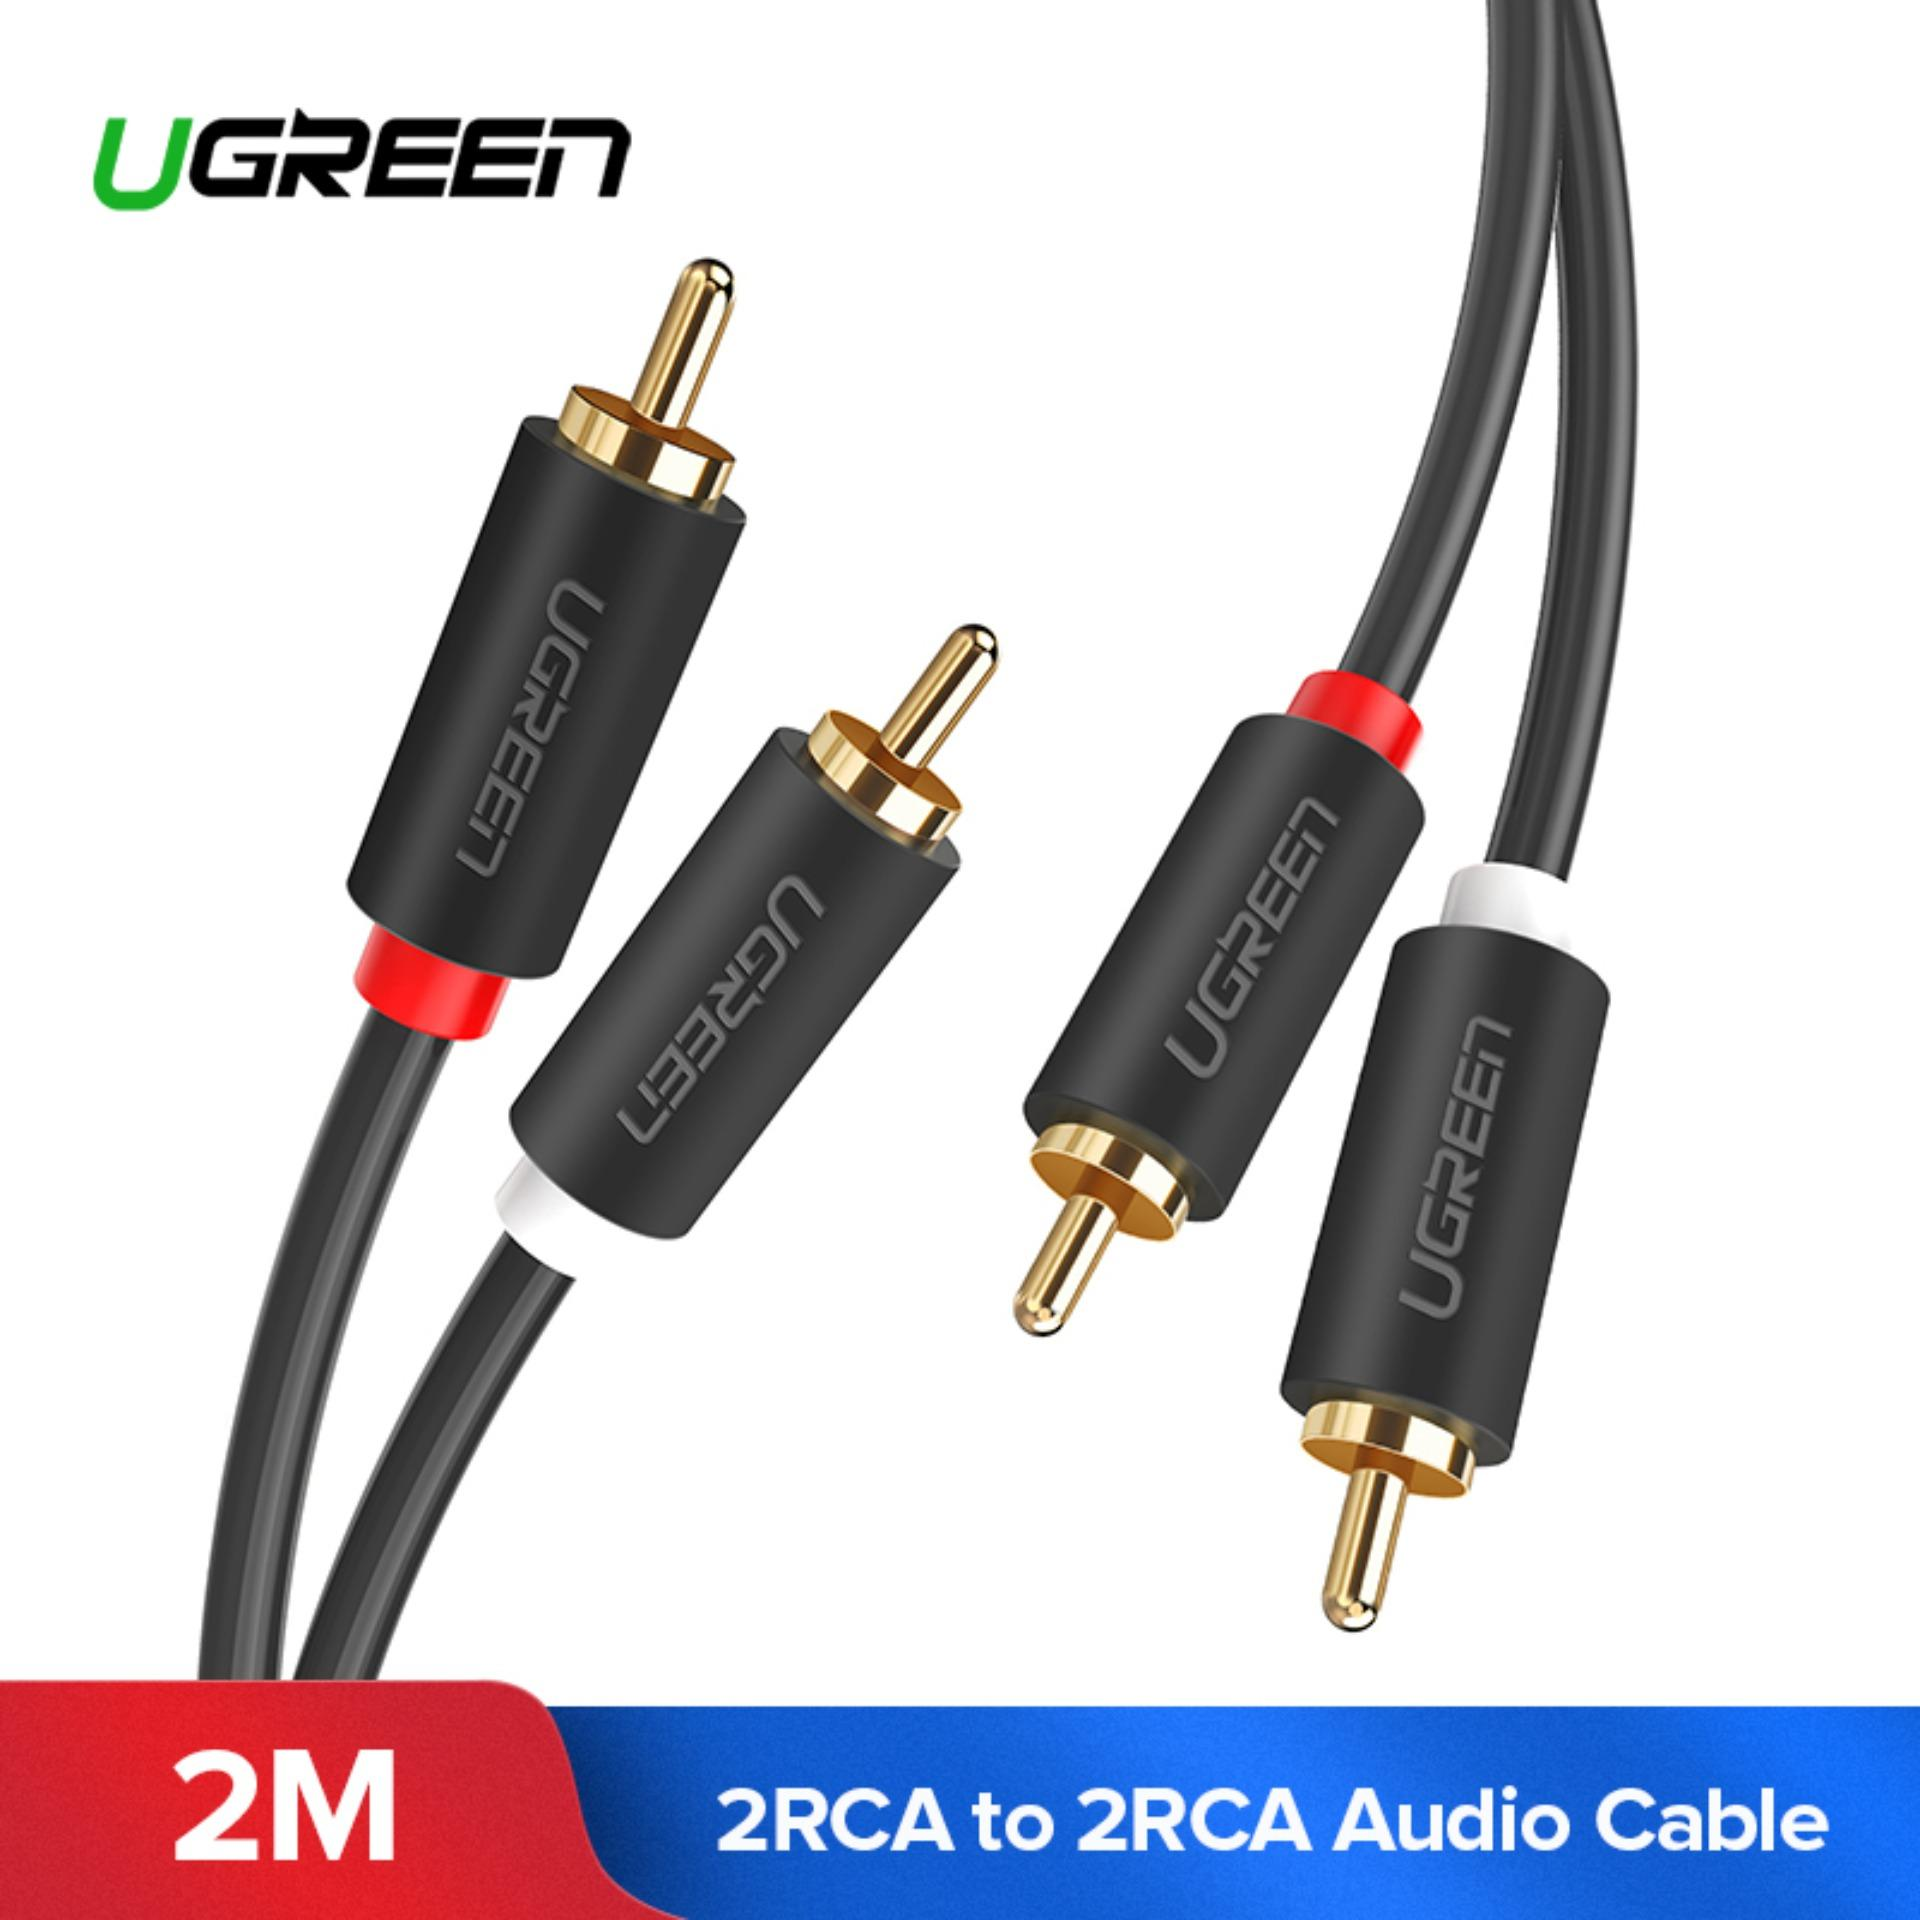 UGREEN 2Meter 2RCA to 2 RCA Male to Male Audio Kabel Gold-Plated RCA Audio Cable for Home Theater DVD TV Amplifier CD Soundbox